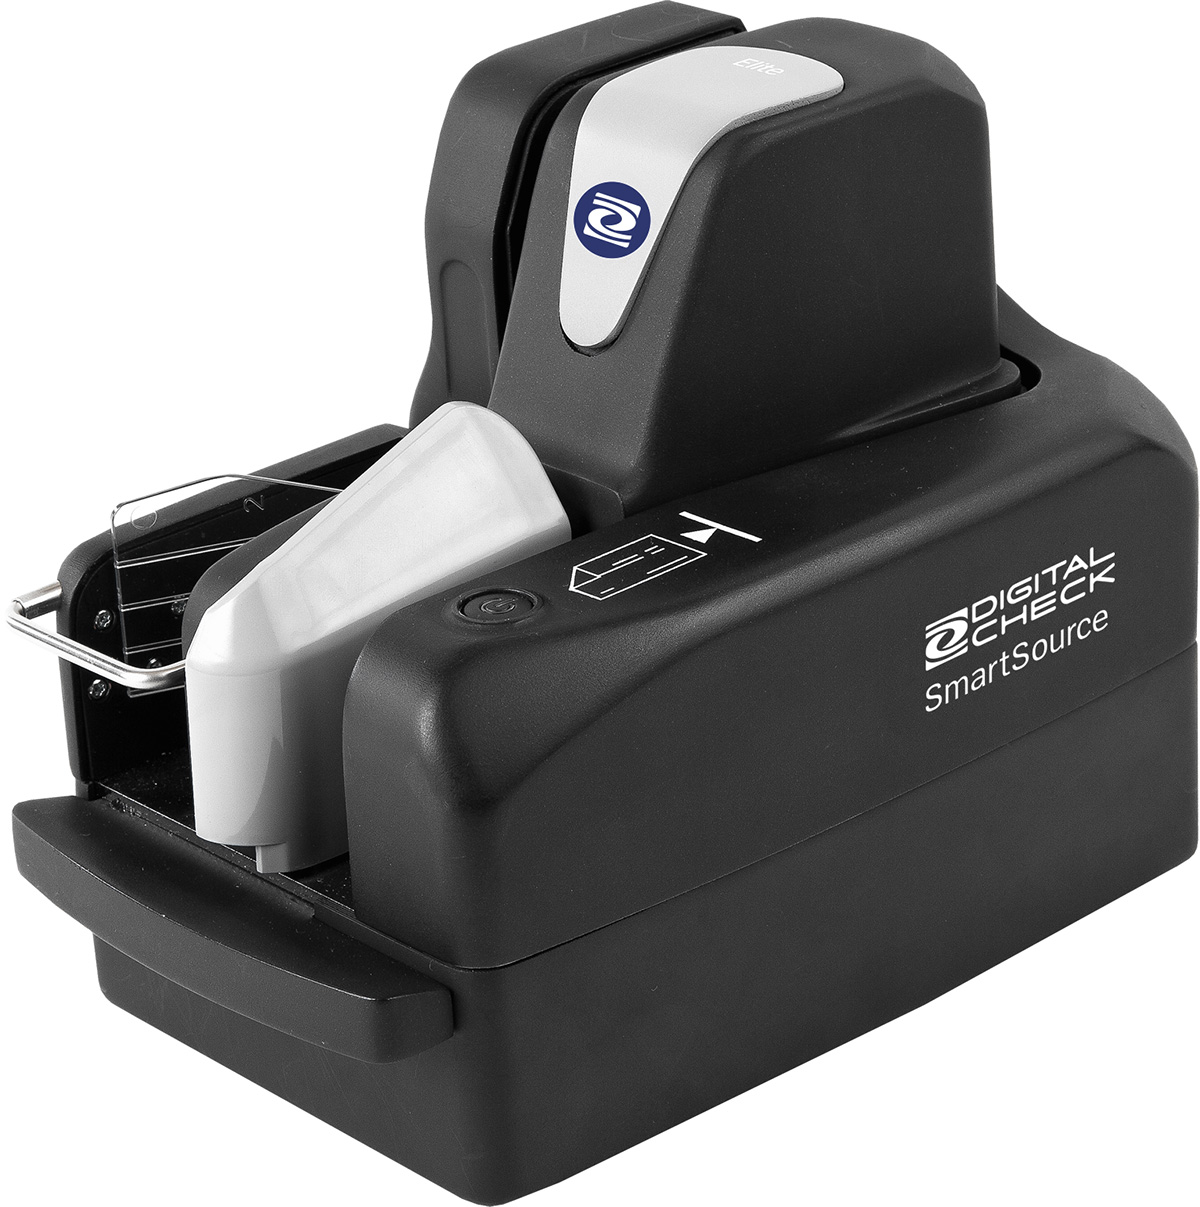 SmartSource<sup><small>®</small></sup> Pro Elite – Teller and RDC Scanner